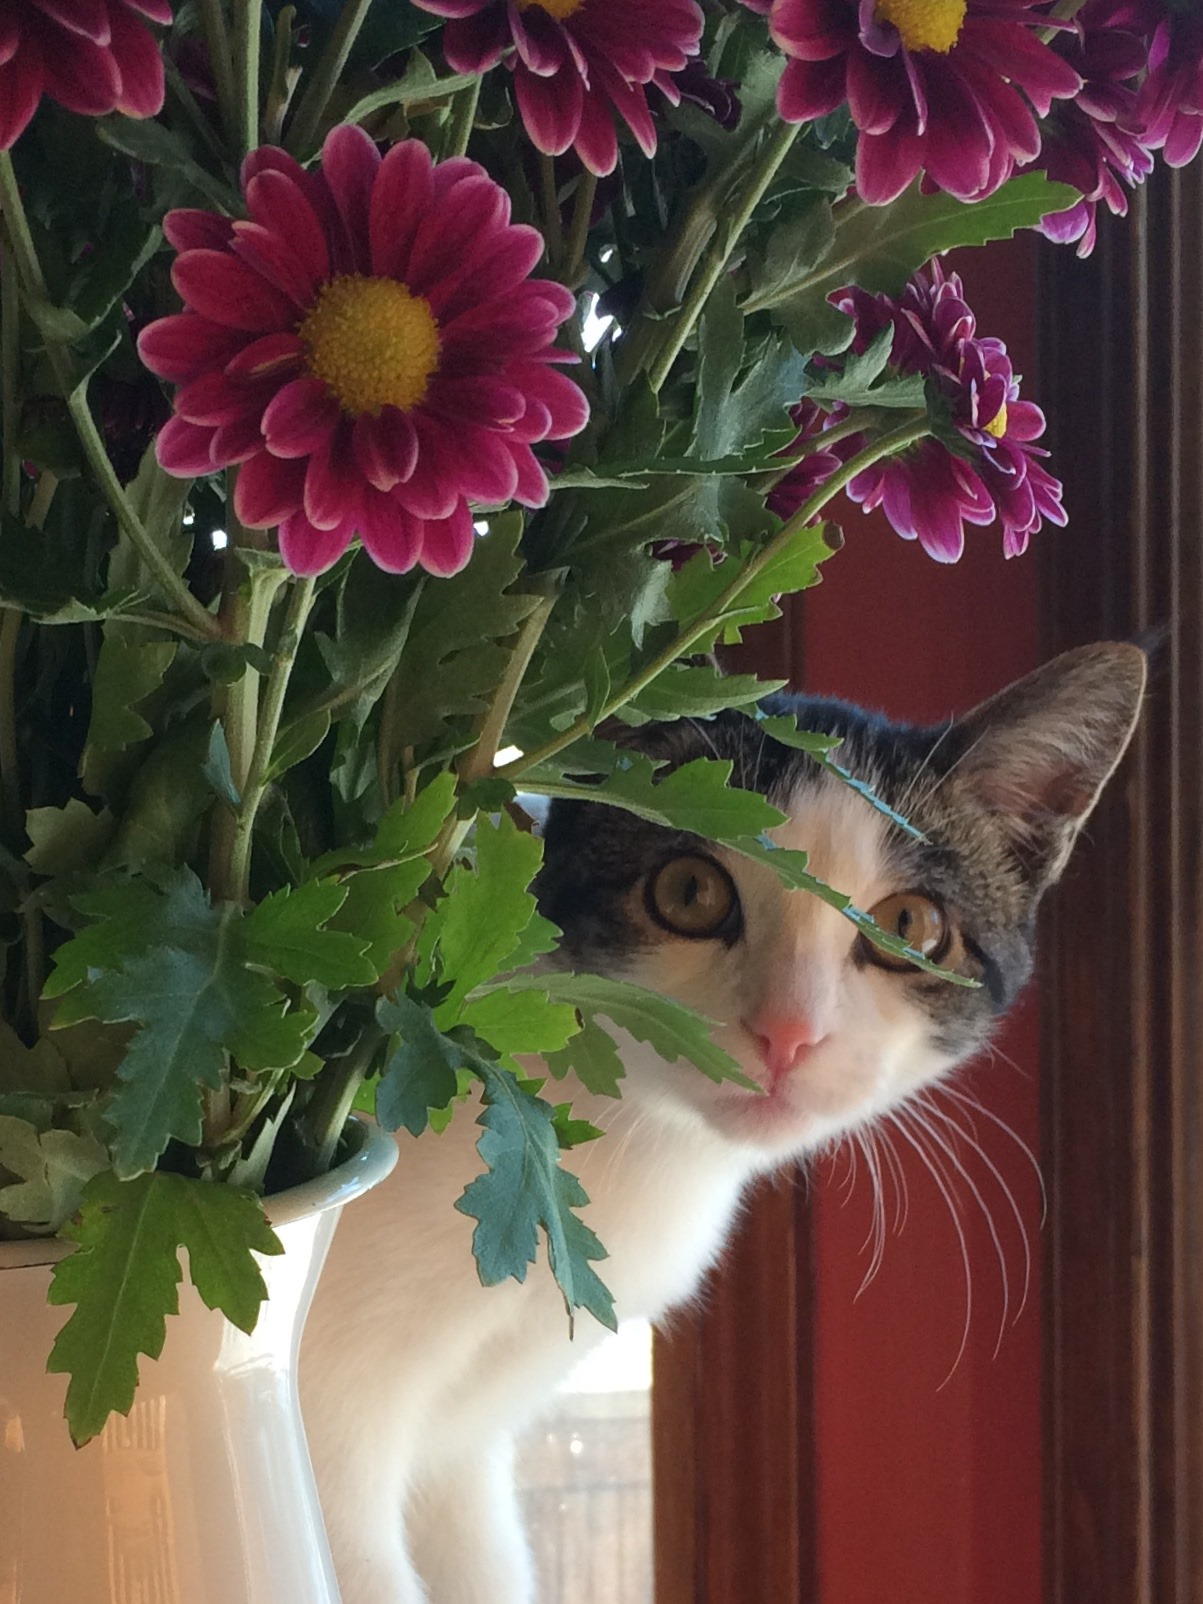 Cedric the cat with flowers